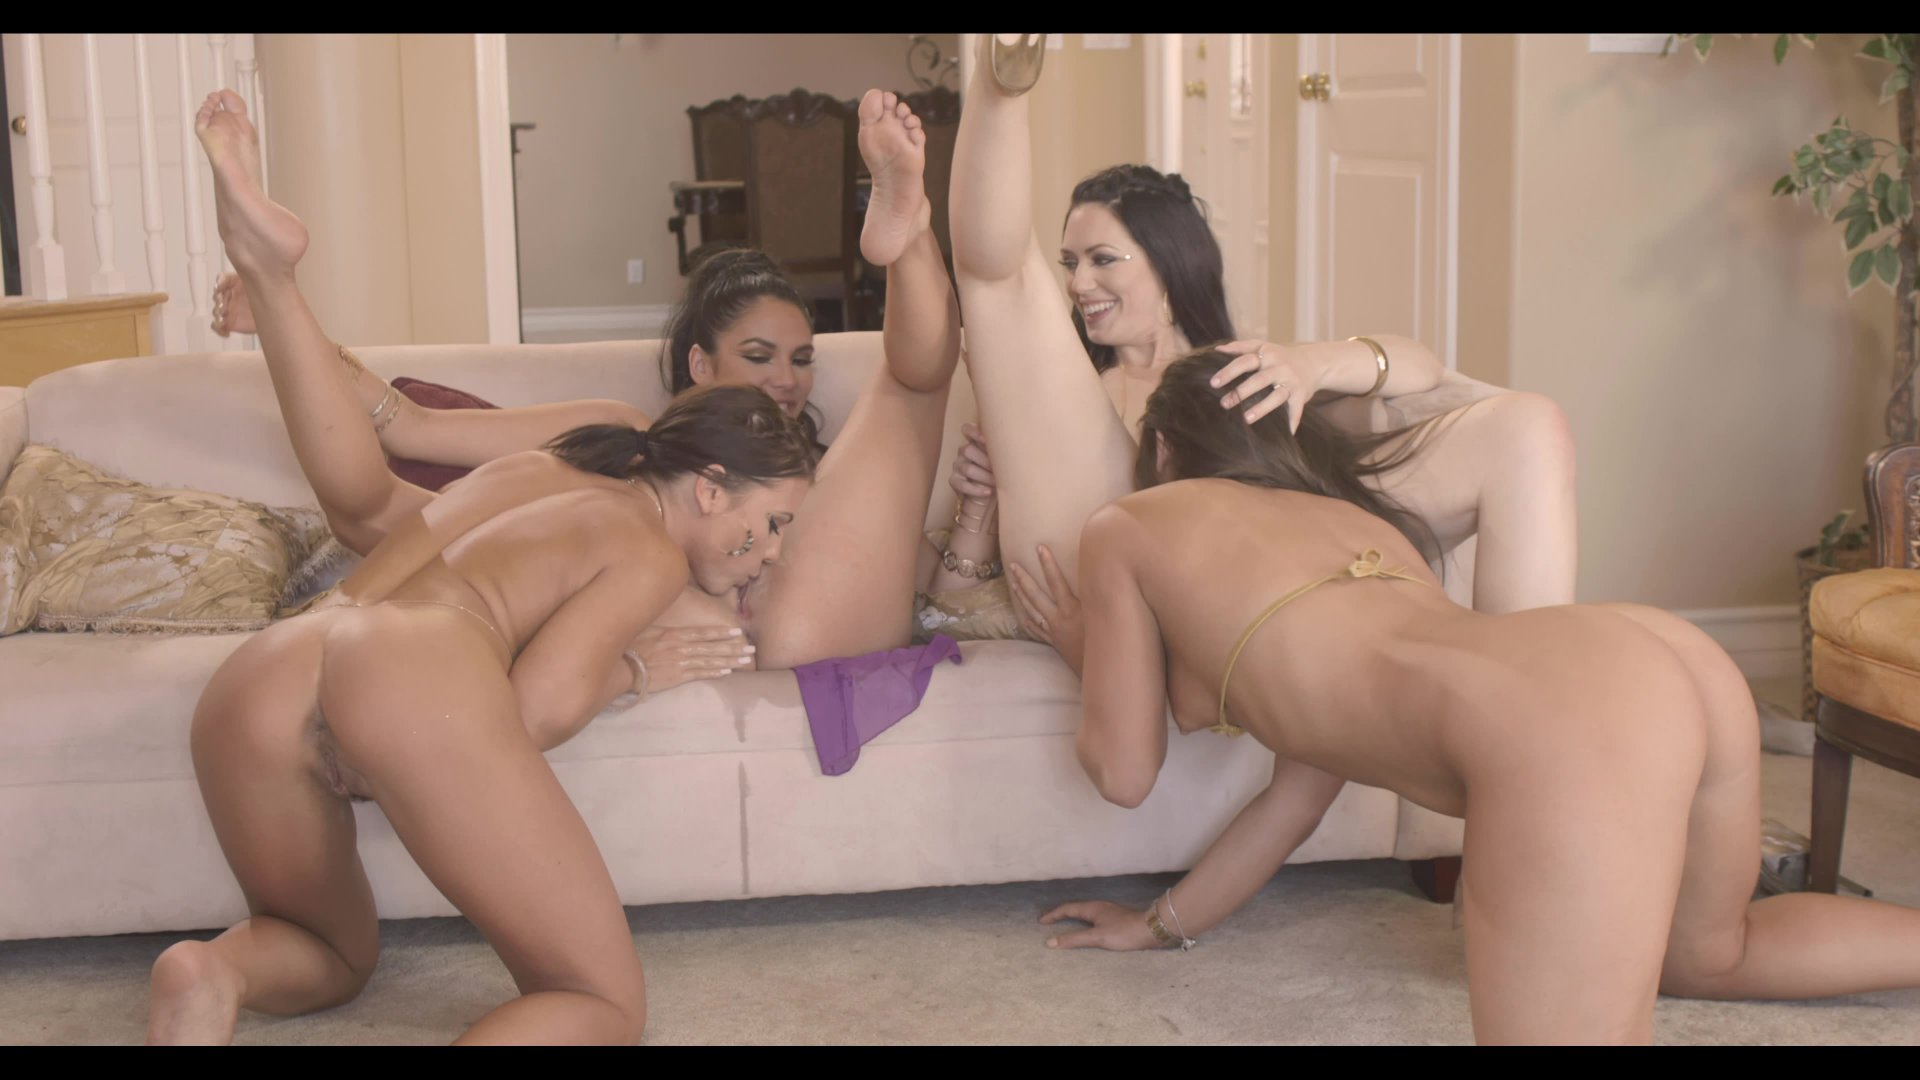 Remarkable, Latina chick orgies something